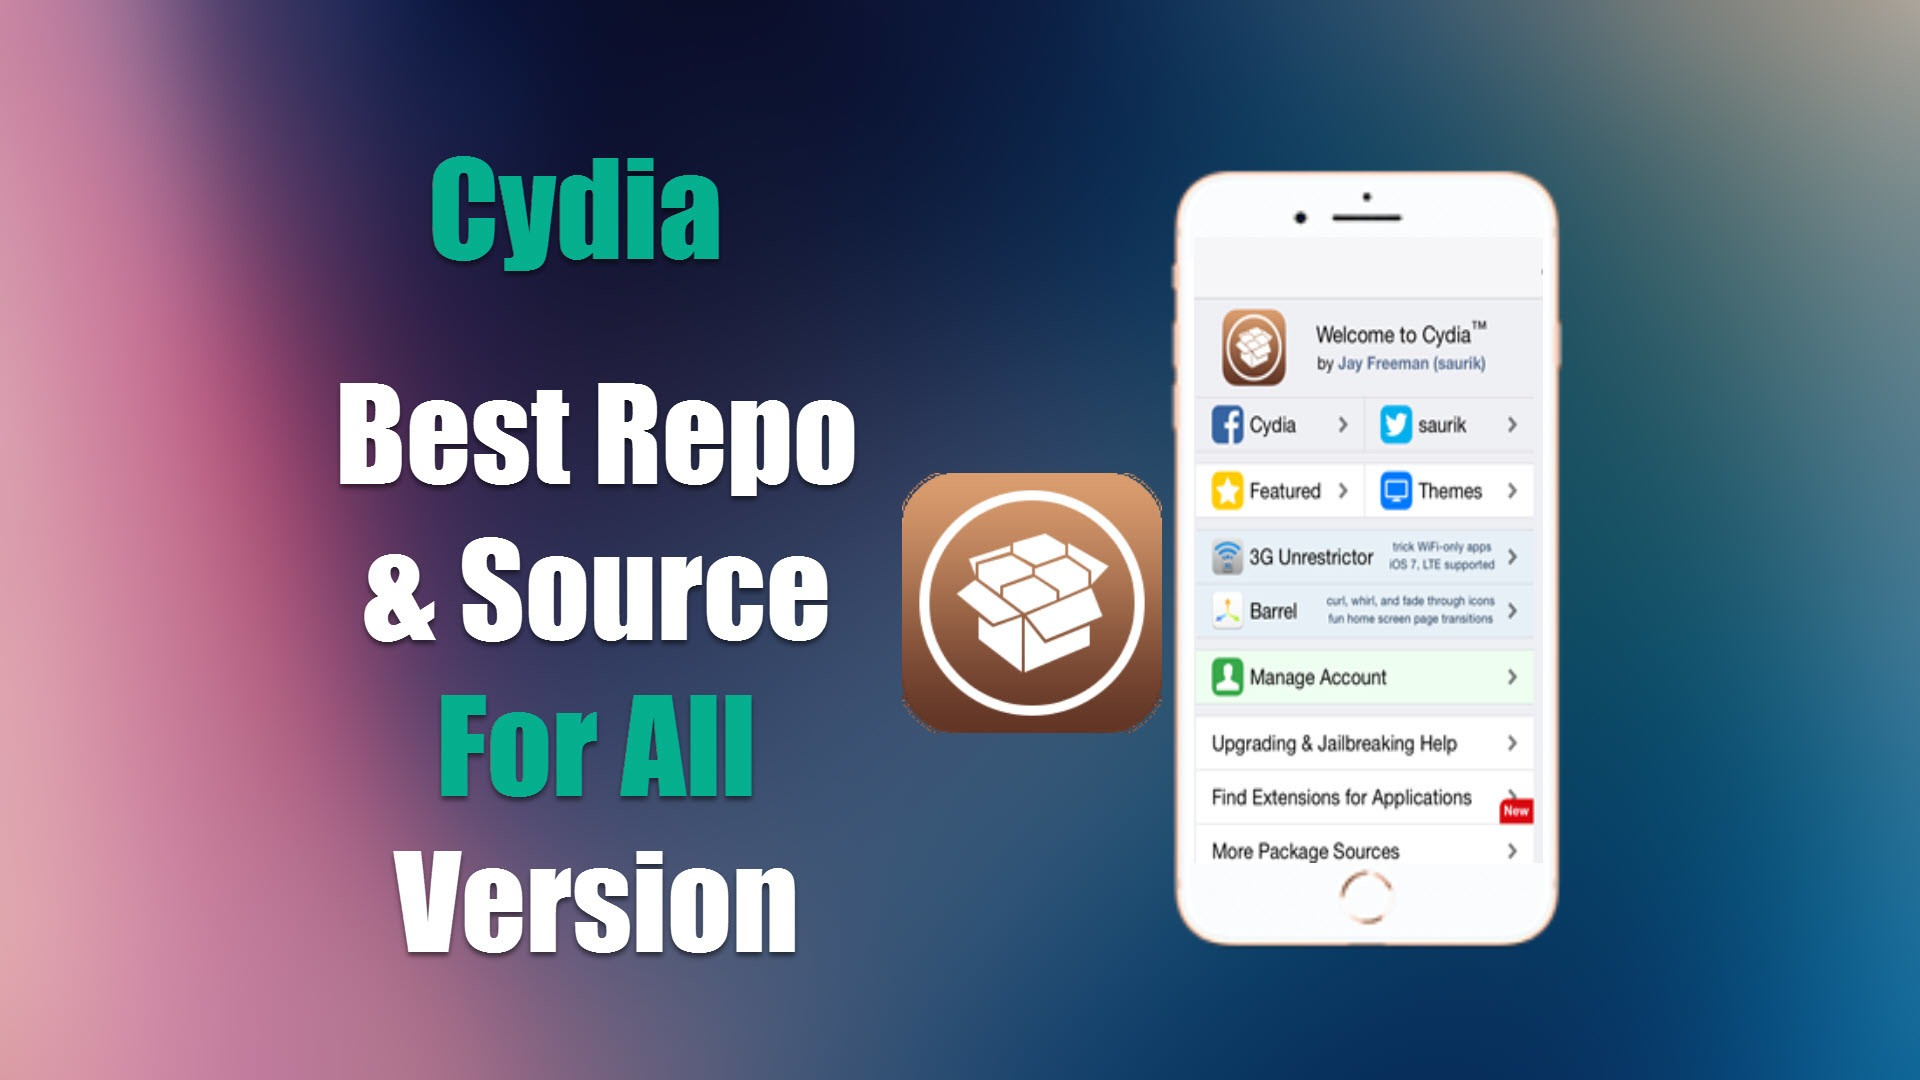 Top Best Cydia Repos And Sources For Cydia App